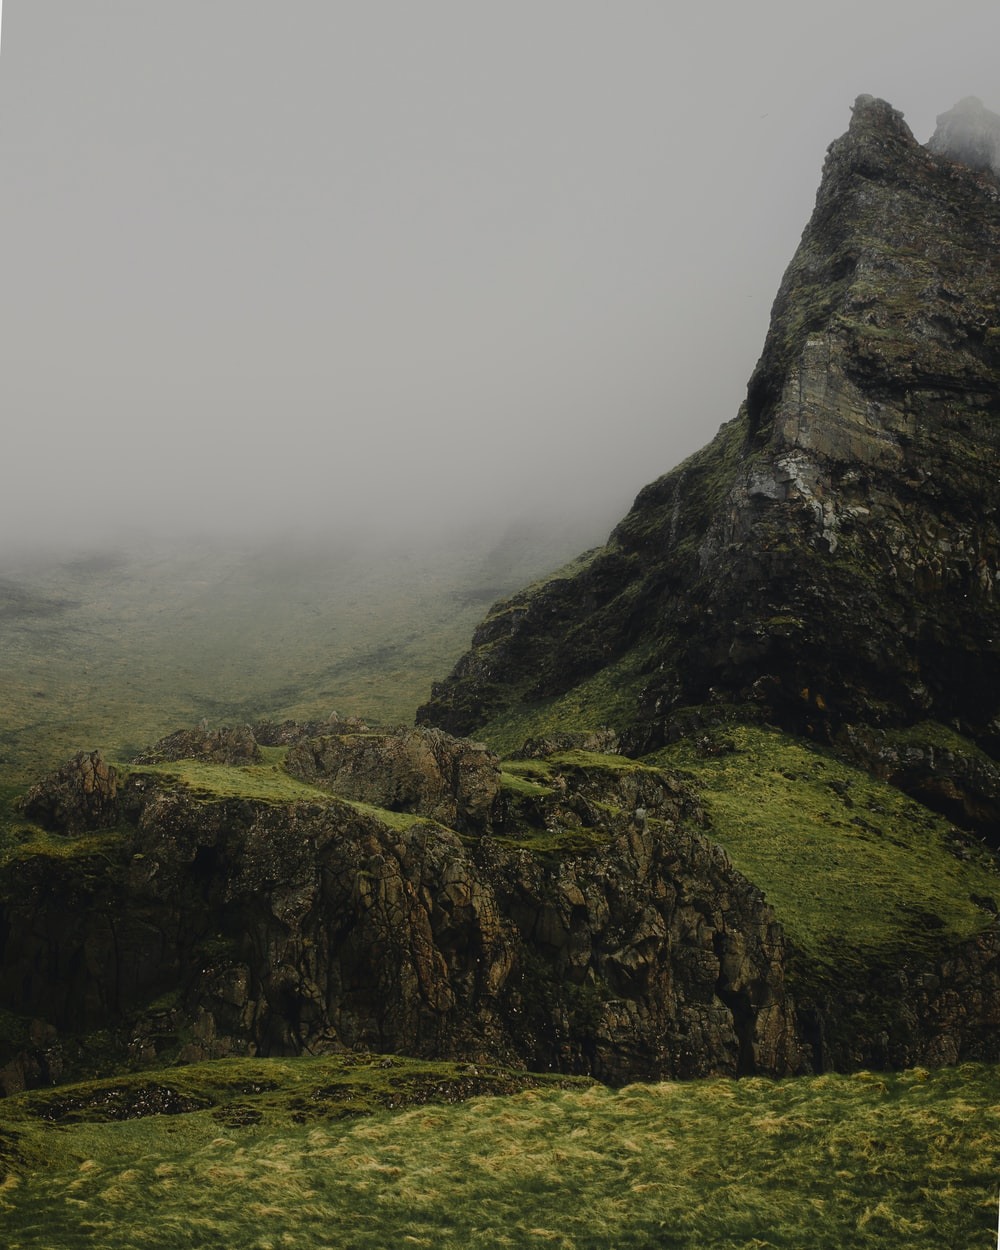 gray and green mountain and thick mist during daytime